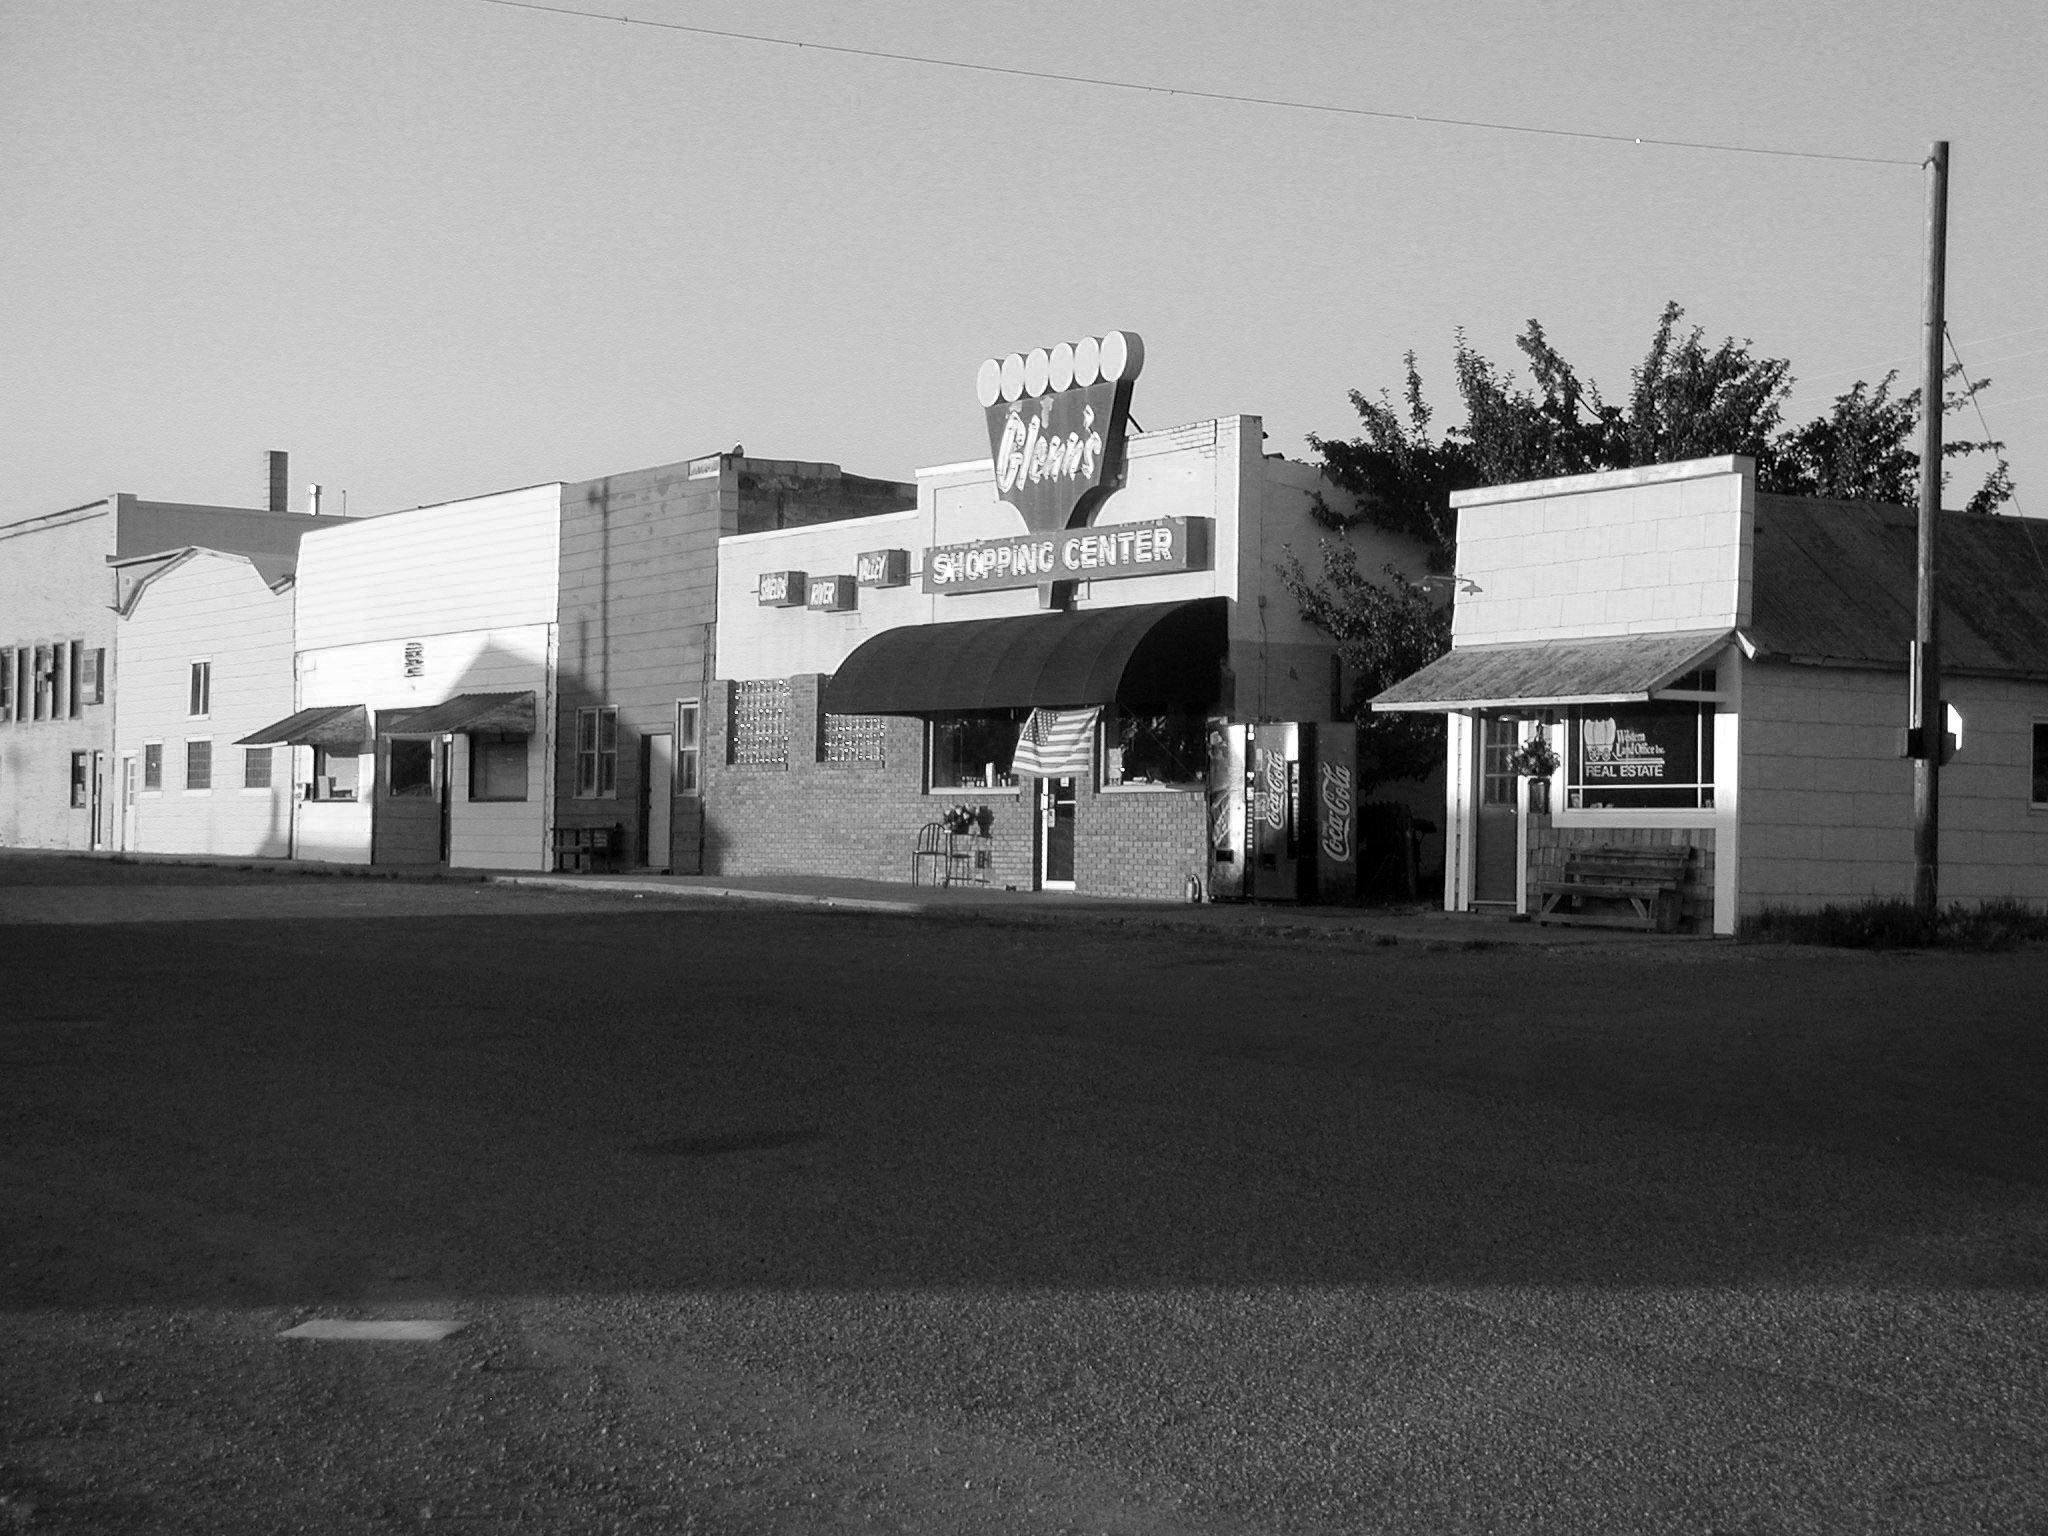 02 BANK_BEFORE_ext_04_miles ave_BW.jpg